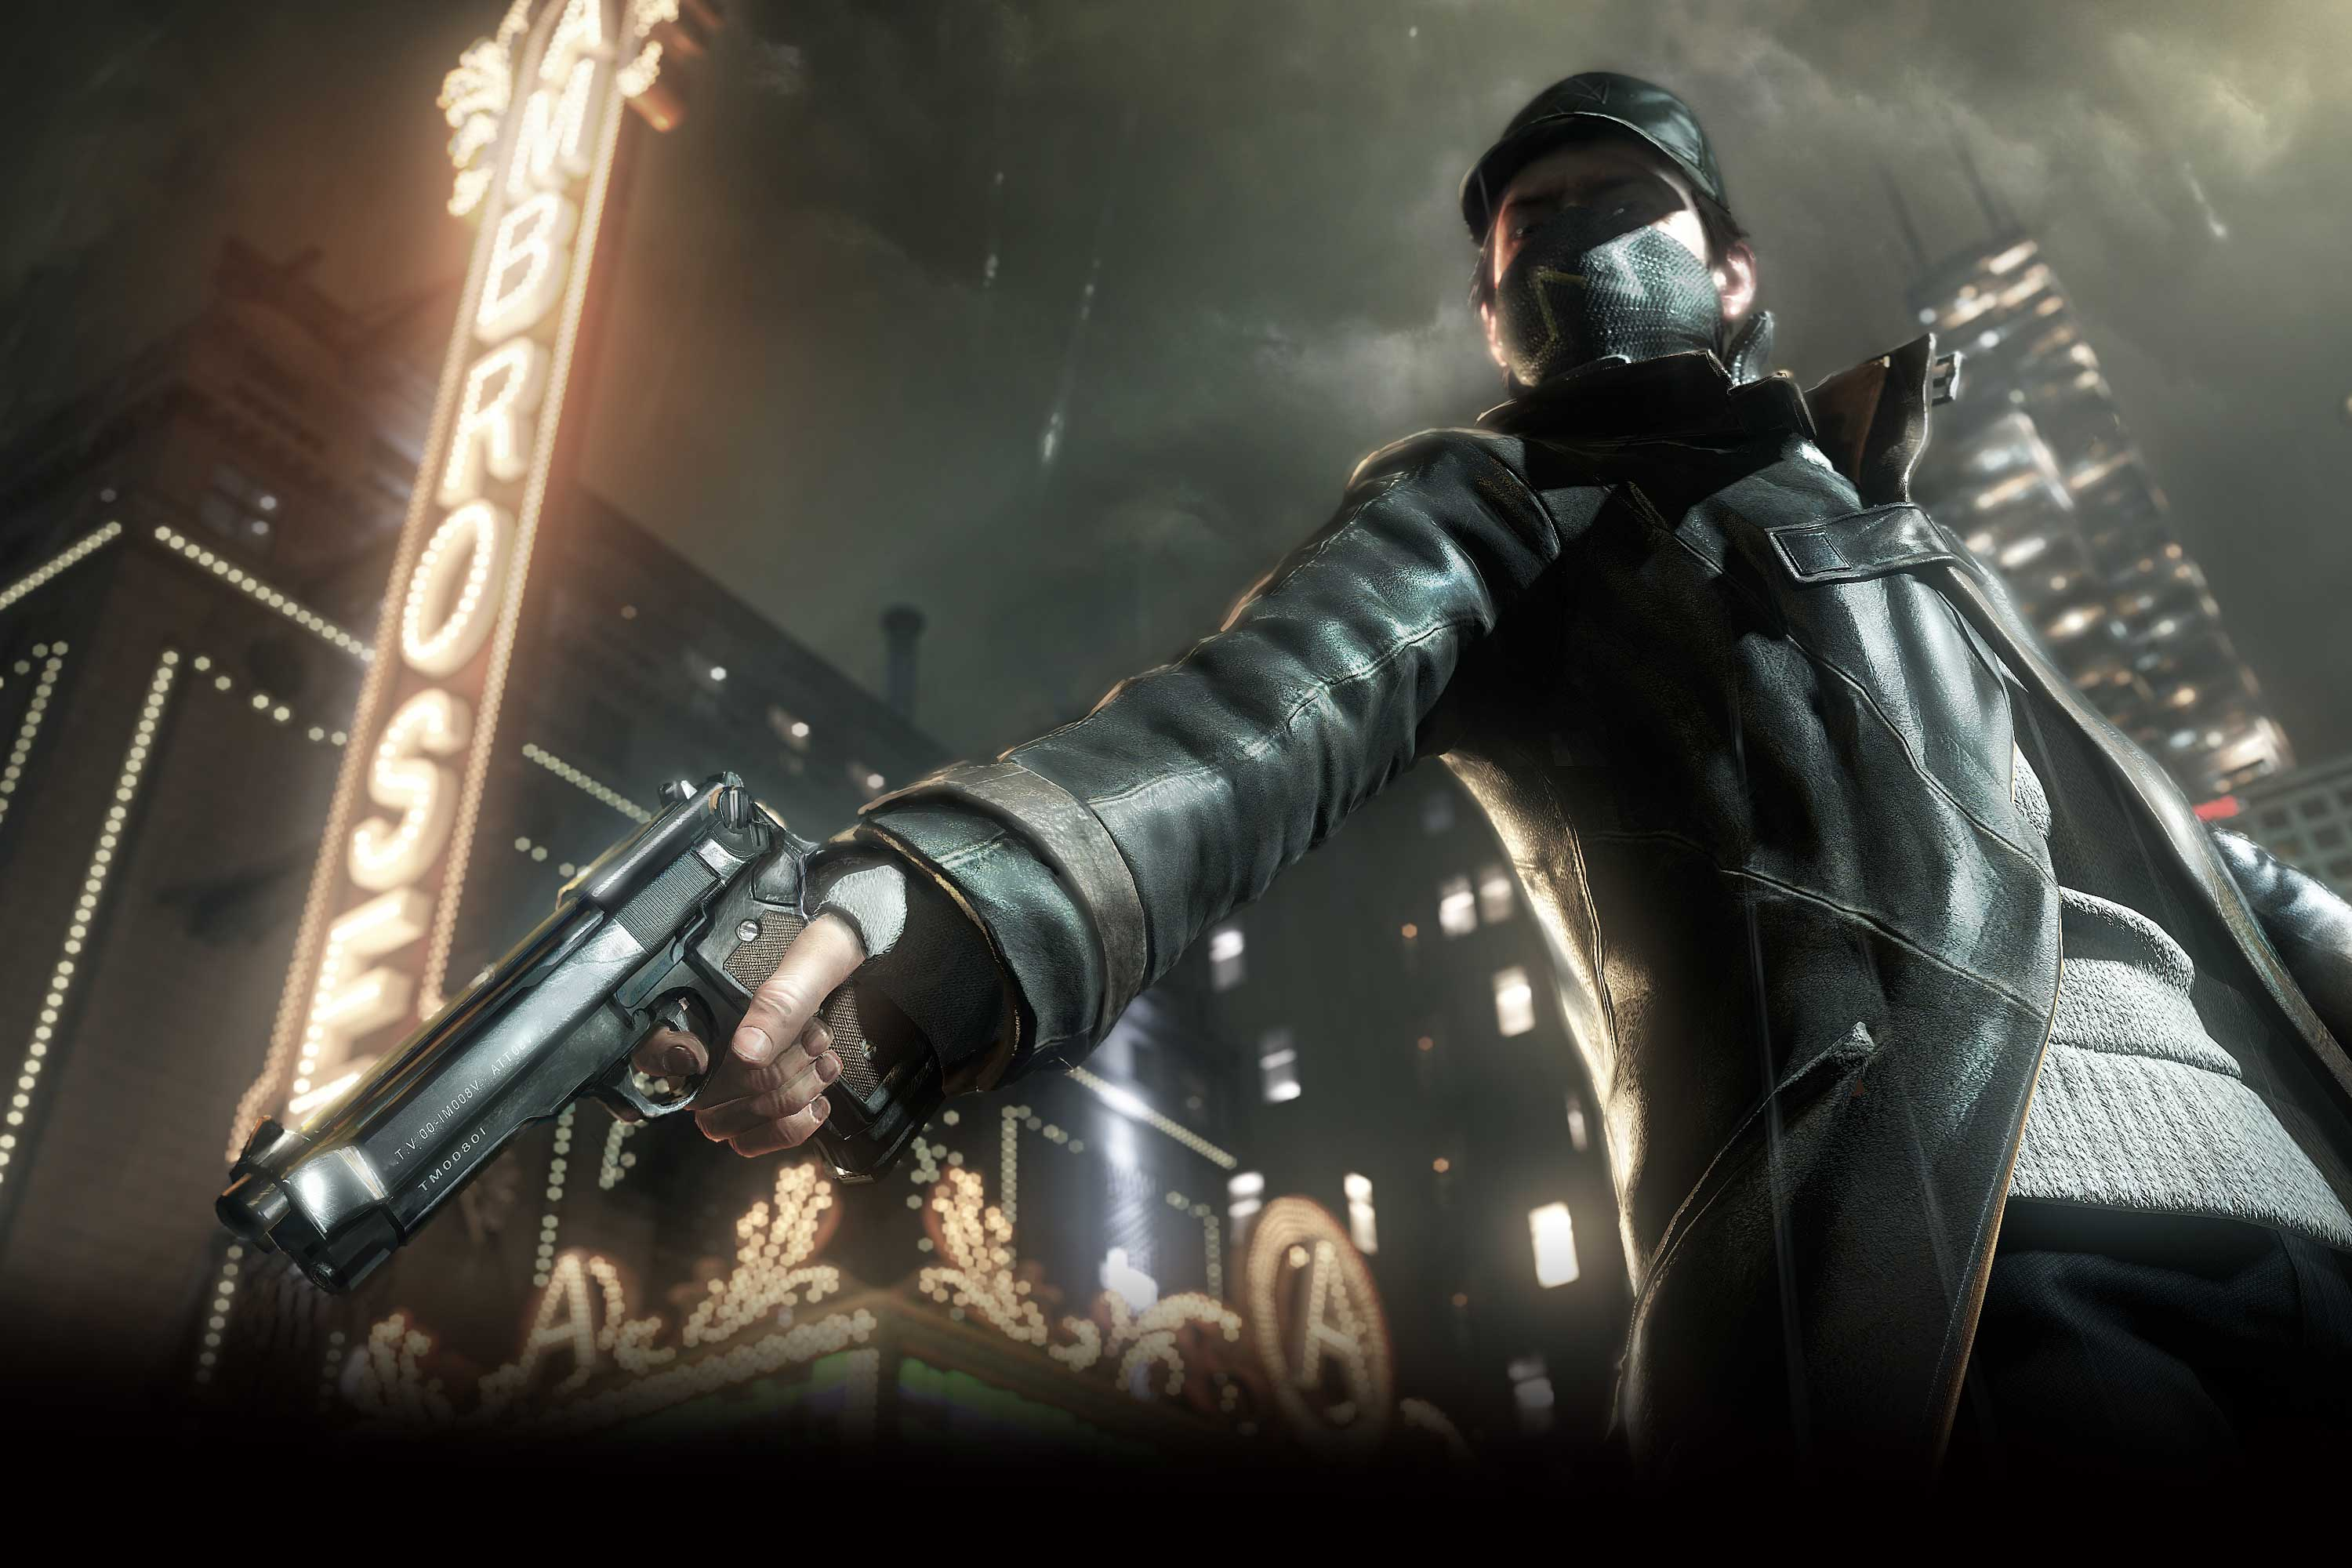 watch dogs aiden wallpaper